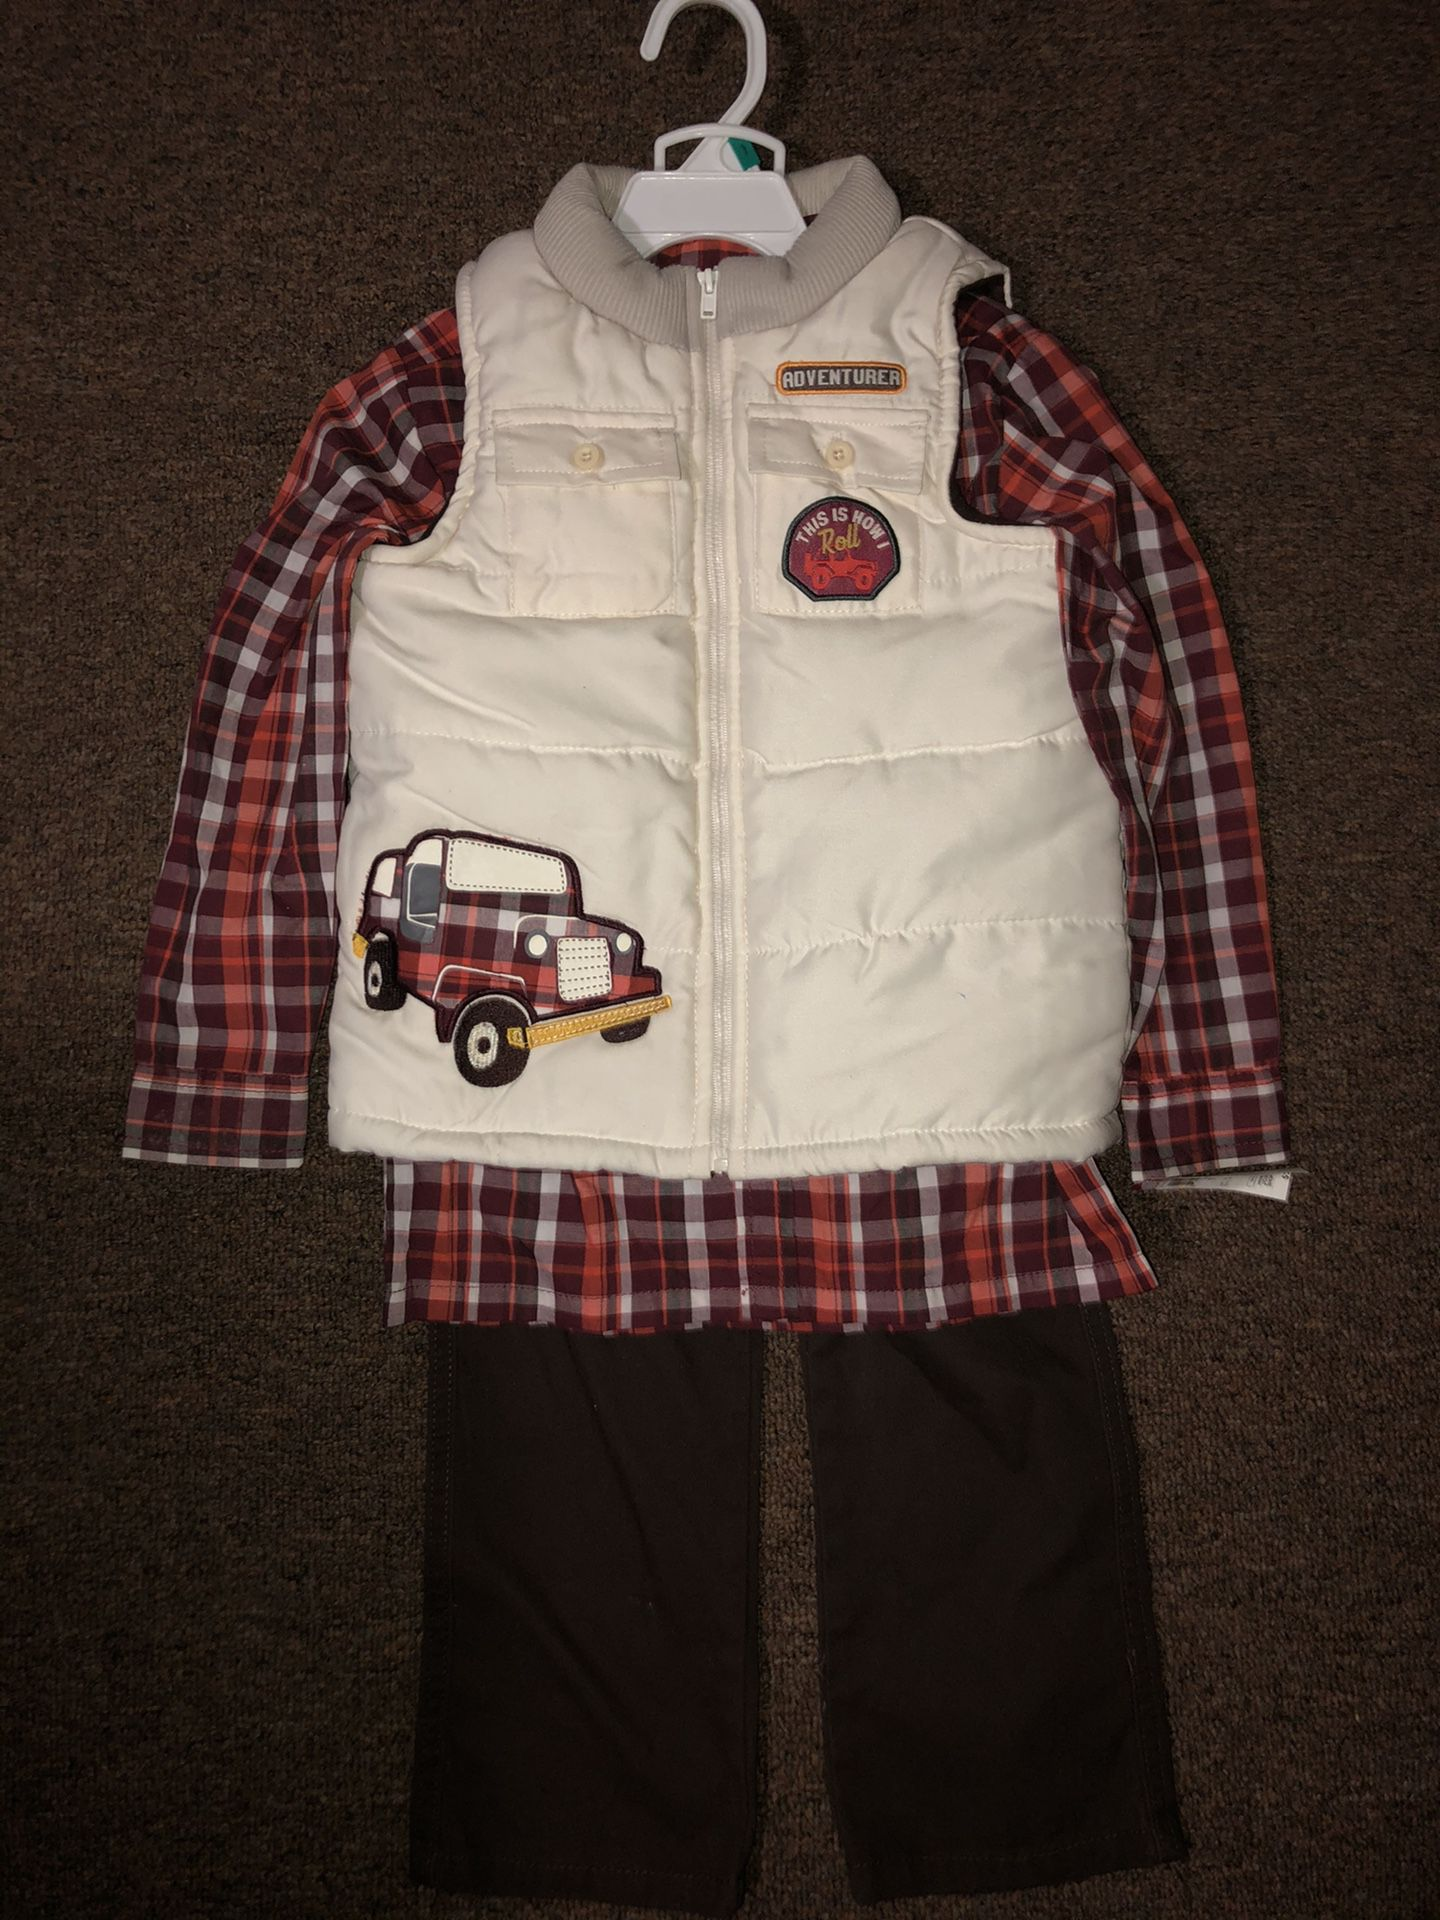 Boy Clothes ranging from 3T-5t